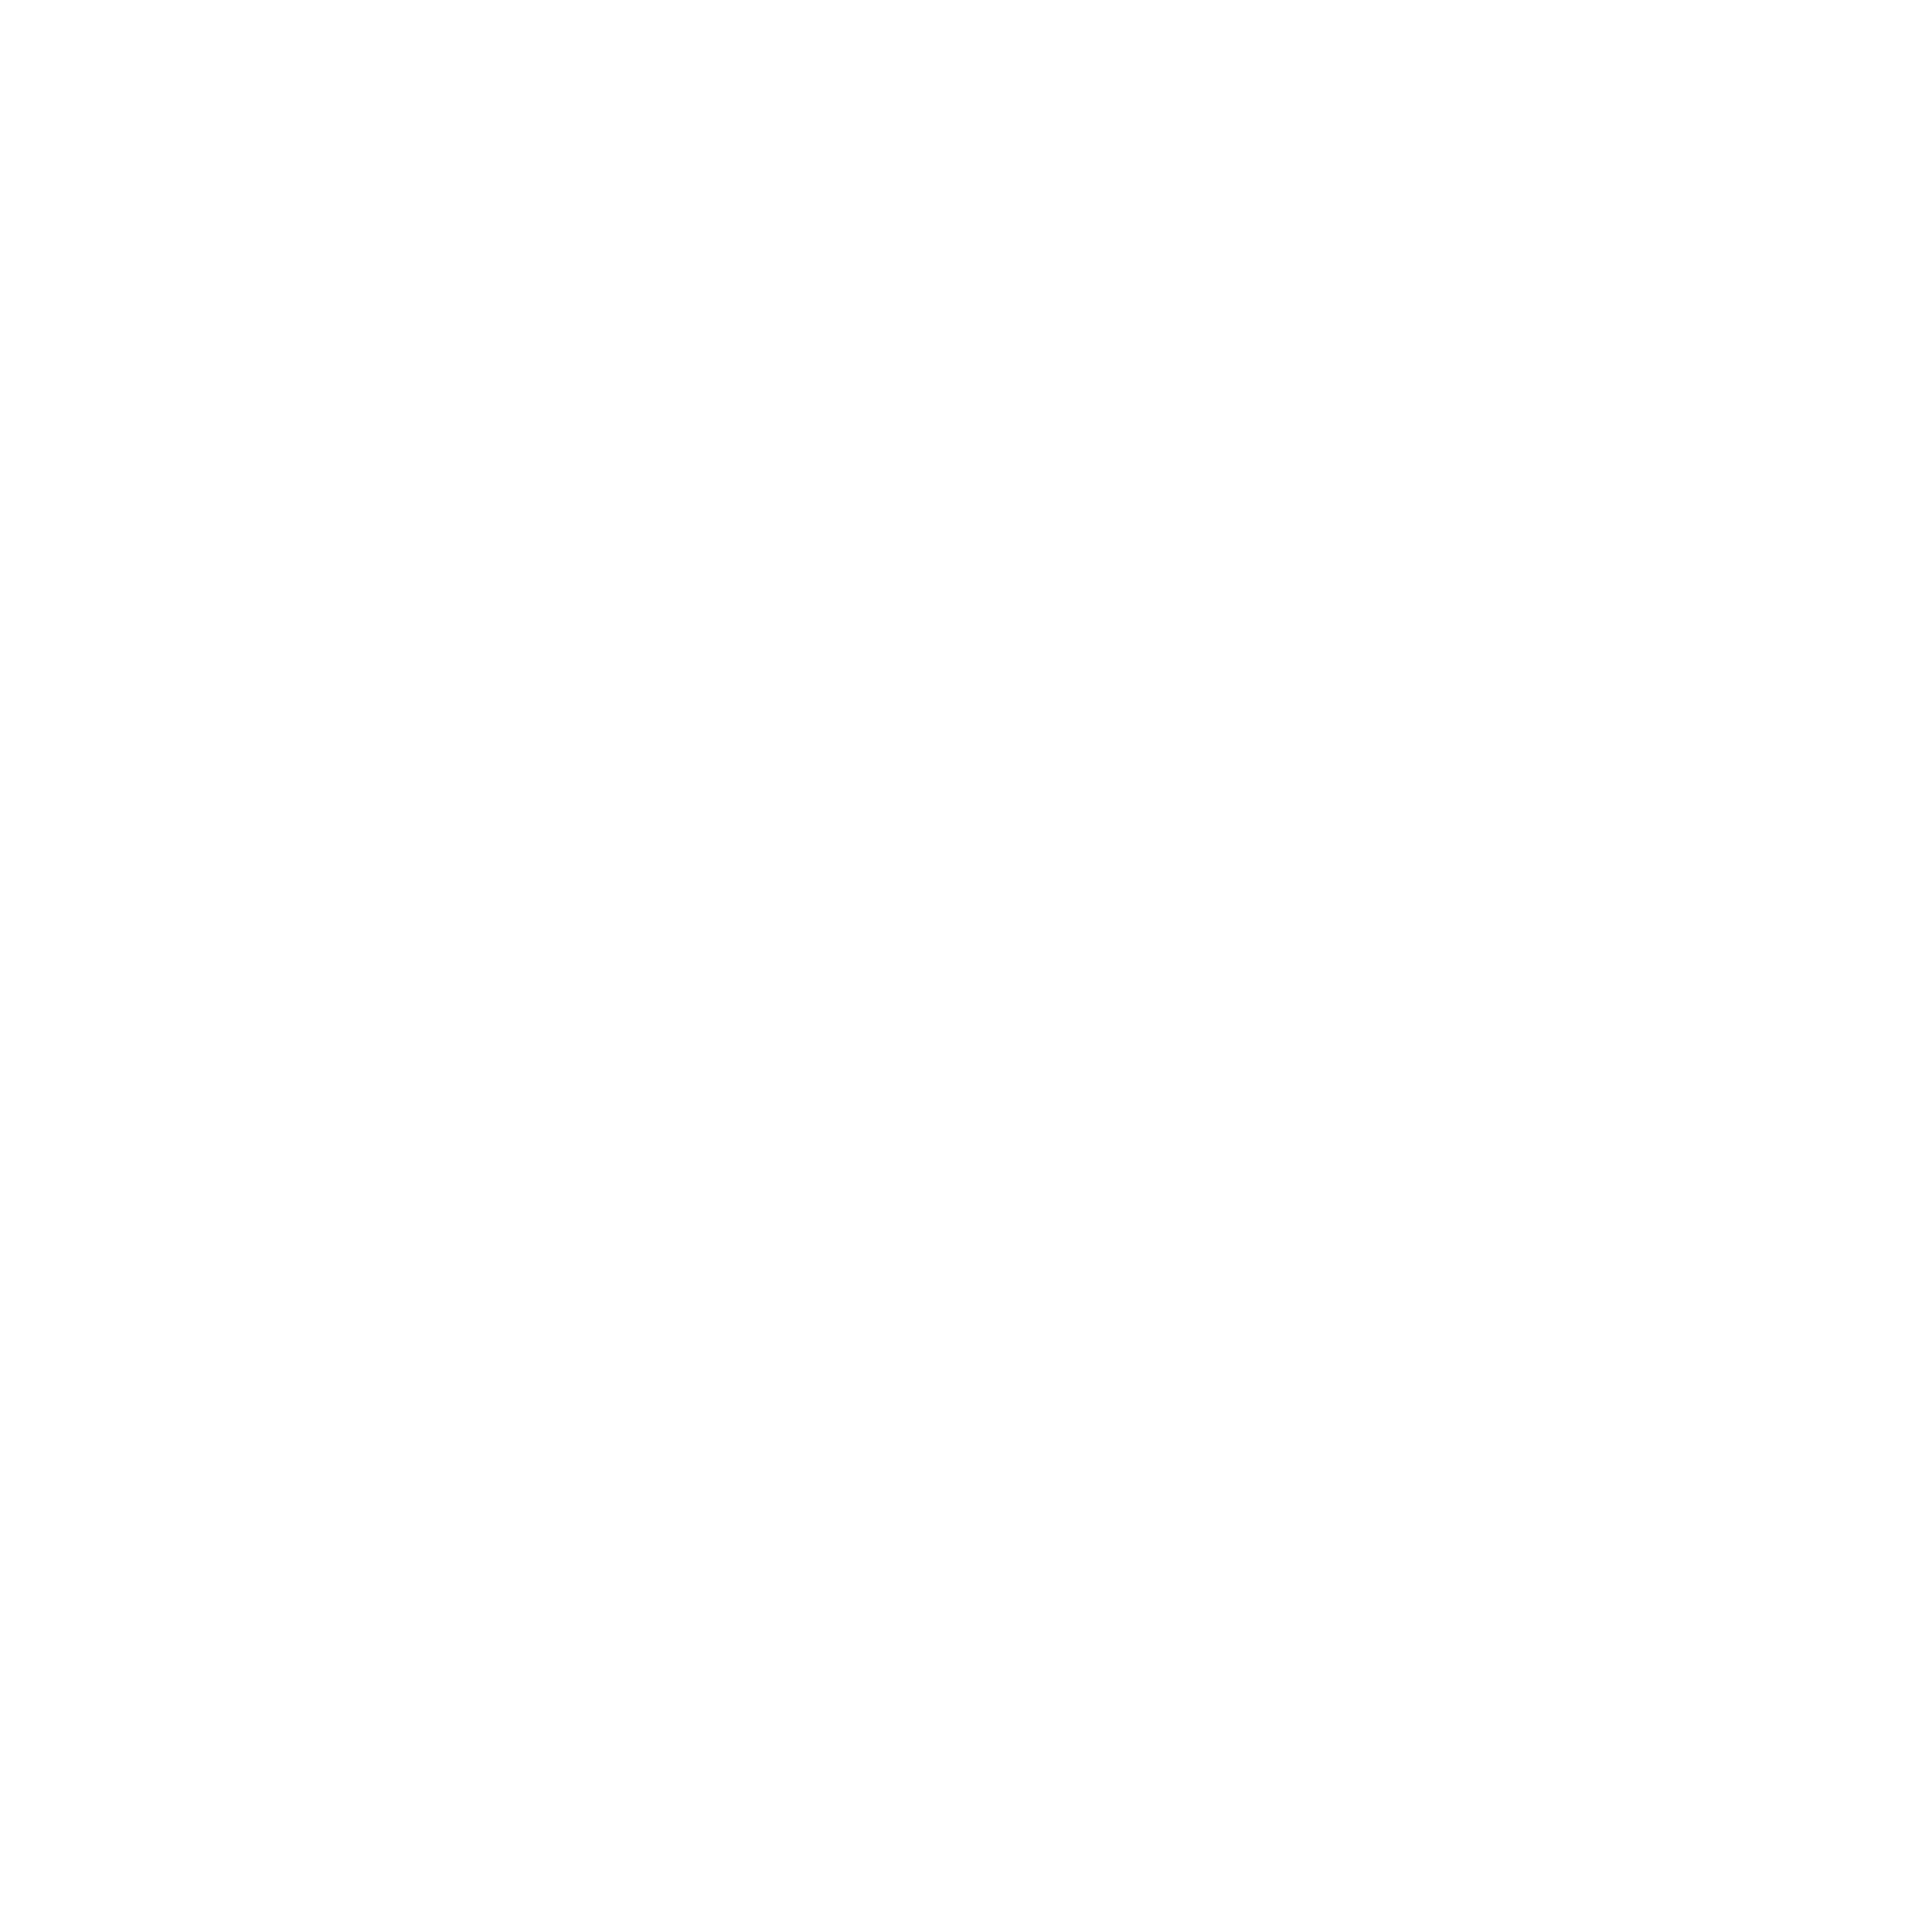 Image of Data stacked.